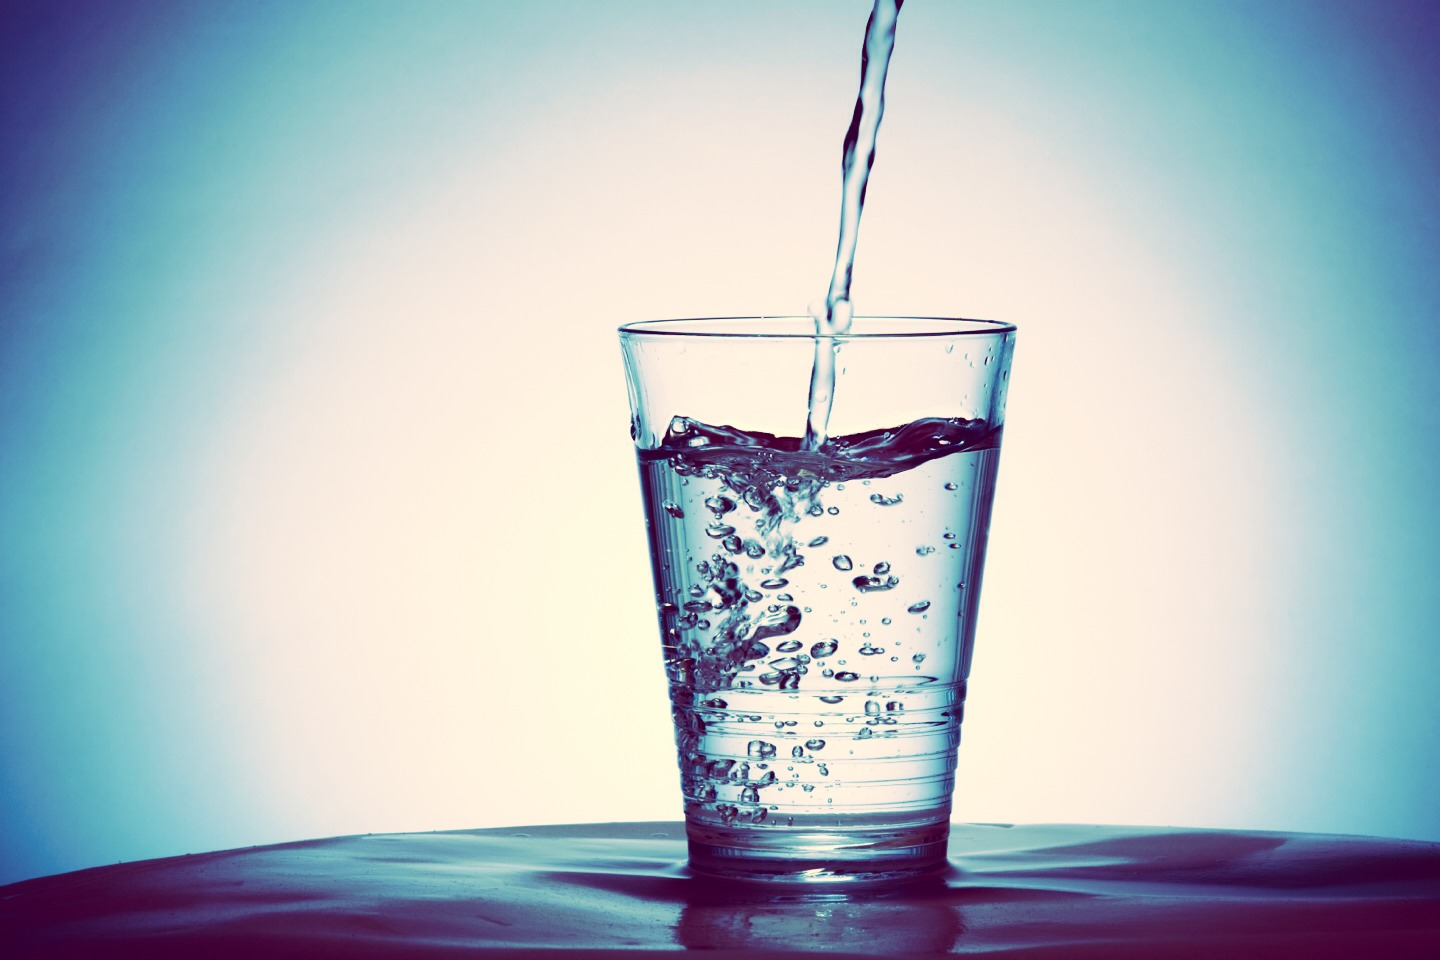 Drink one cup of water when you get up to start up your body for the day. Drink another cup 30 min before a meal so you aren't as hungry during the meal and won't eat as much. Drink another after to help with digestion. Then one when you work out and one before you bathe.